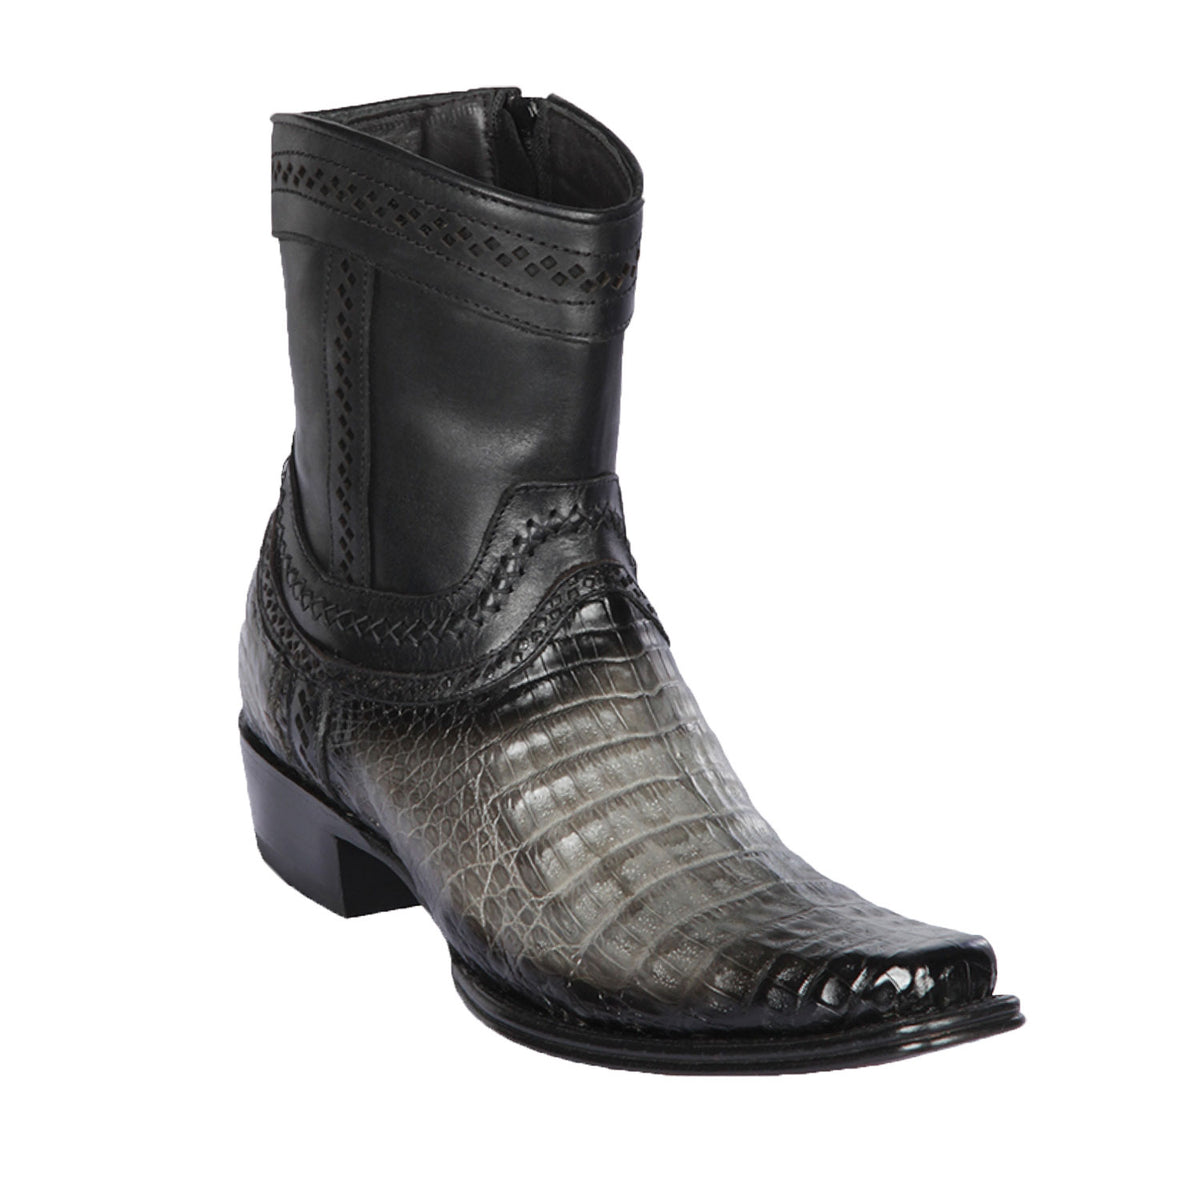 Caiman Belly Skin Short Boot LAB-76B82